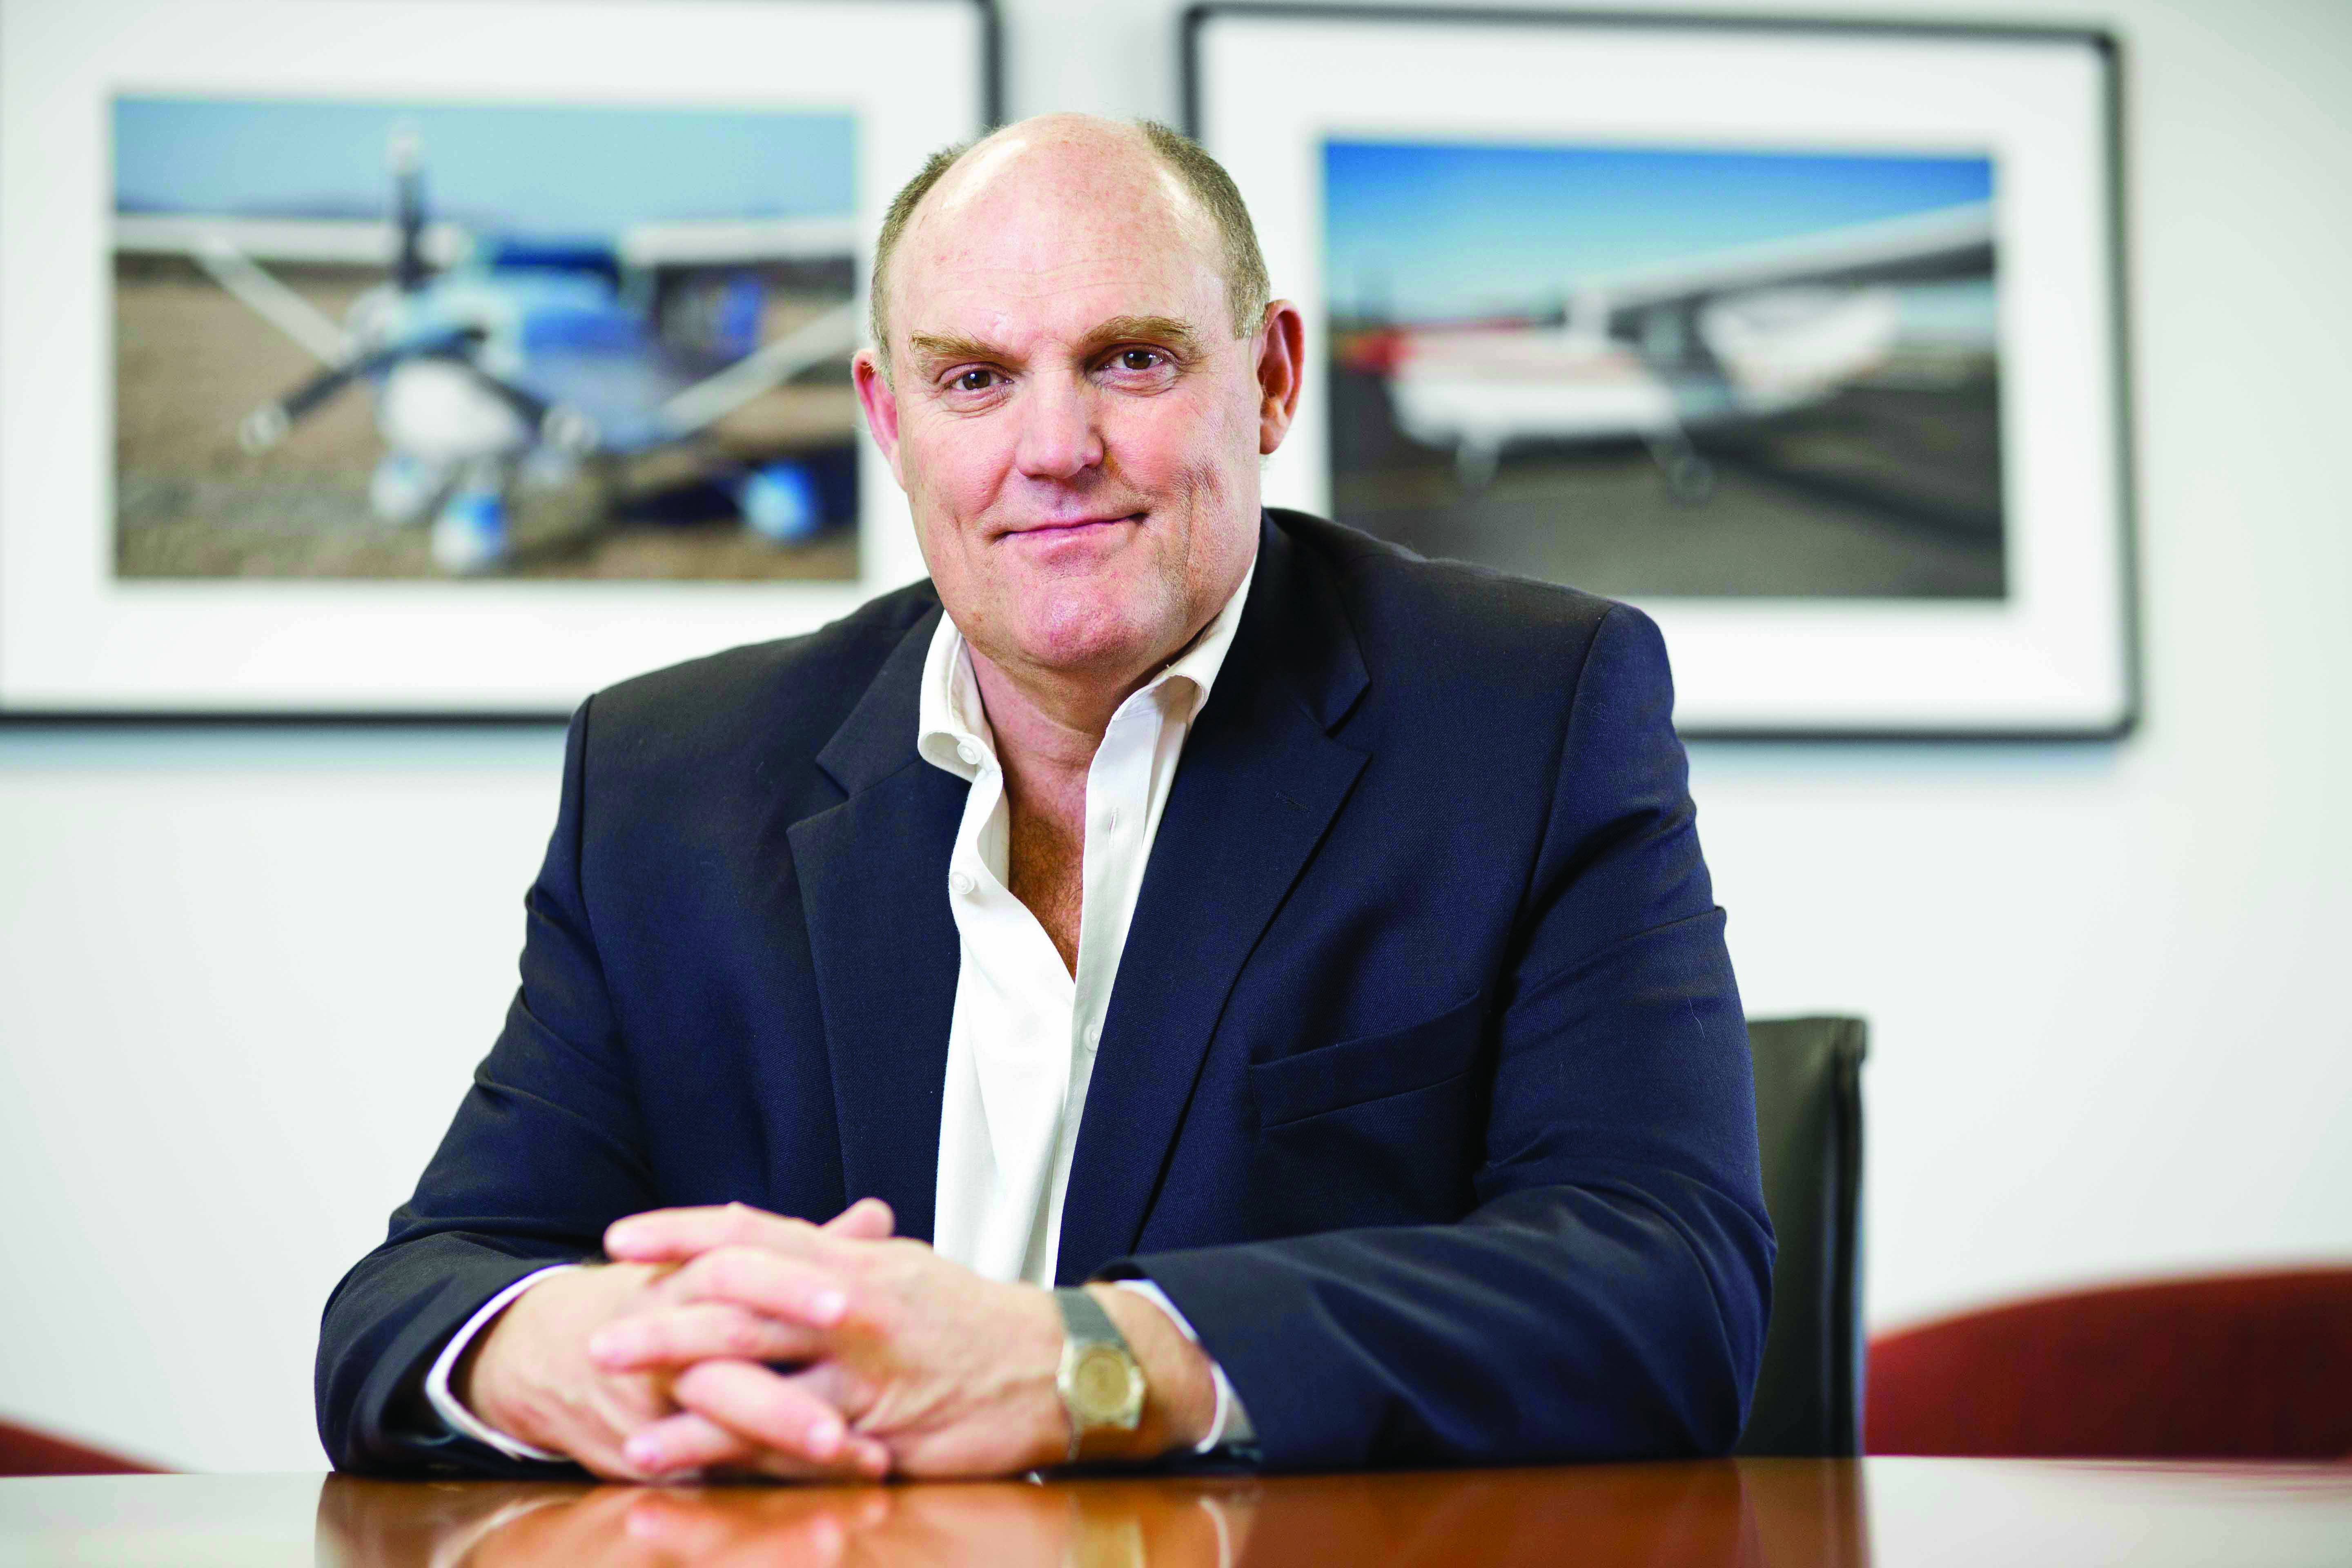 Hein Boegman, CEO of PwC Africa